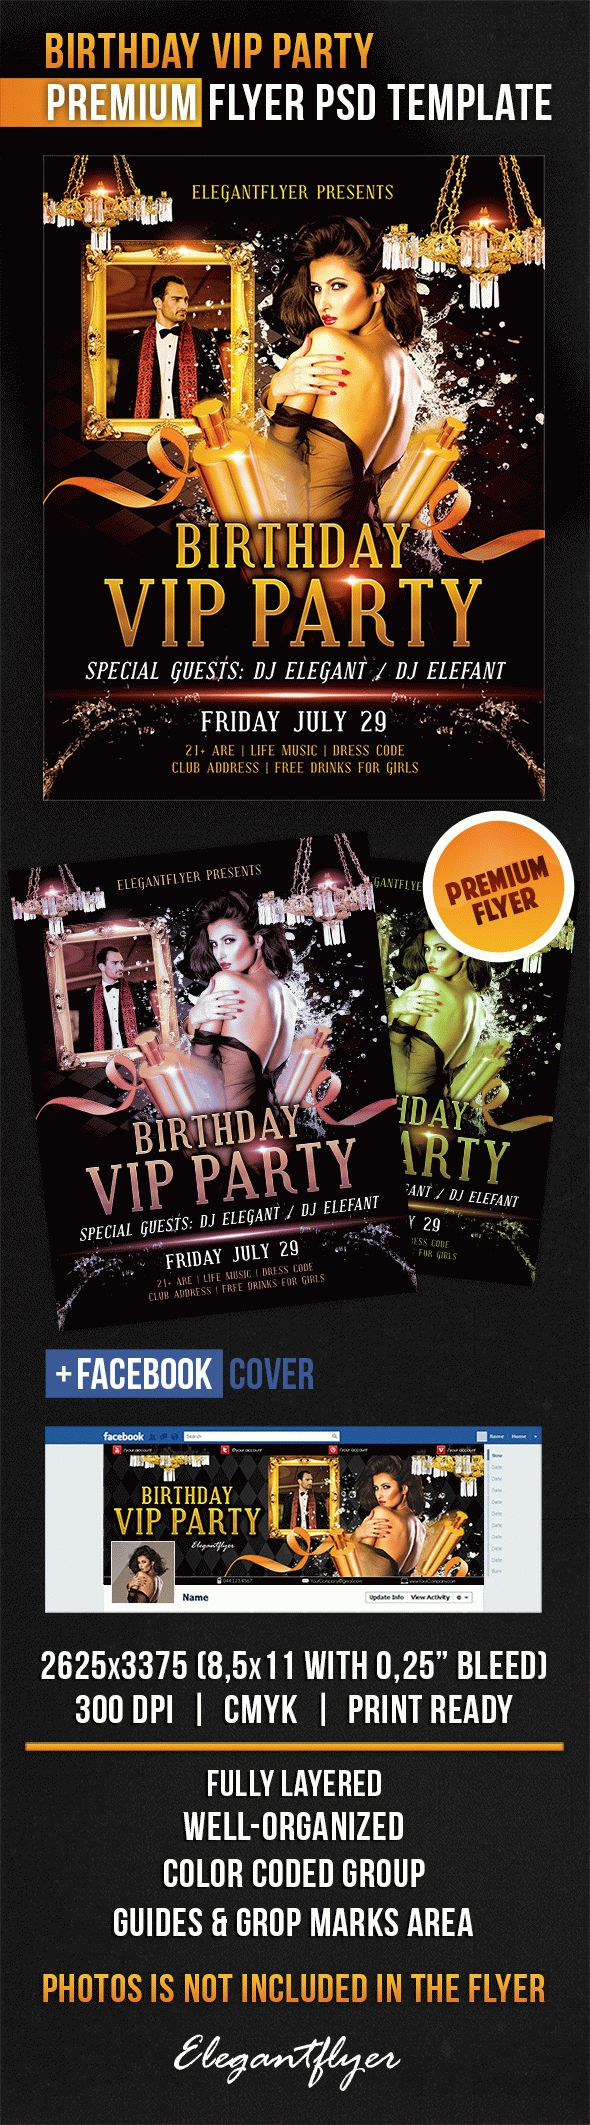 Birthday Vip Party – Flyer PSD Template + Facebook Cover